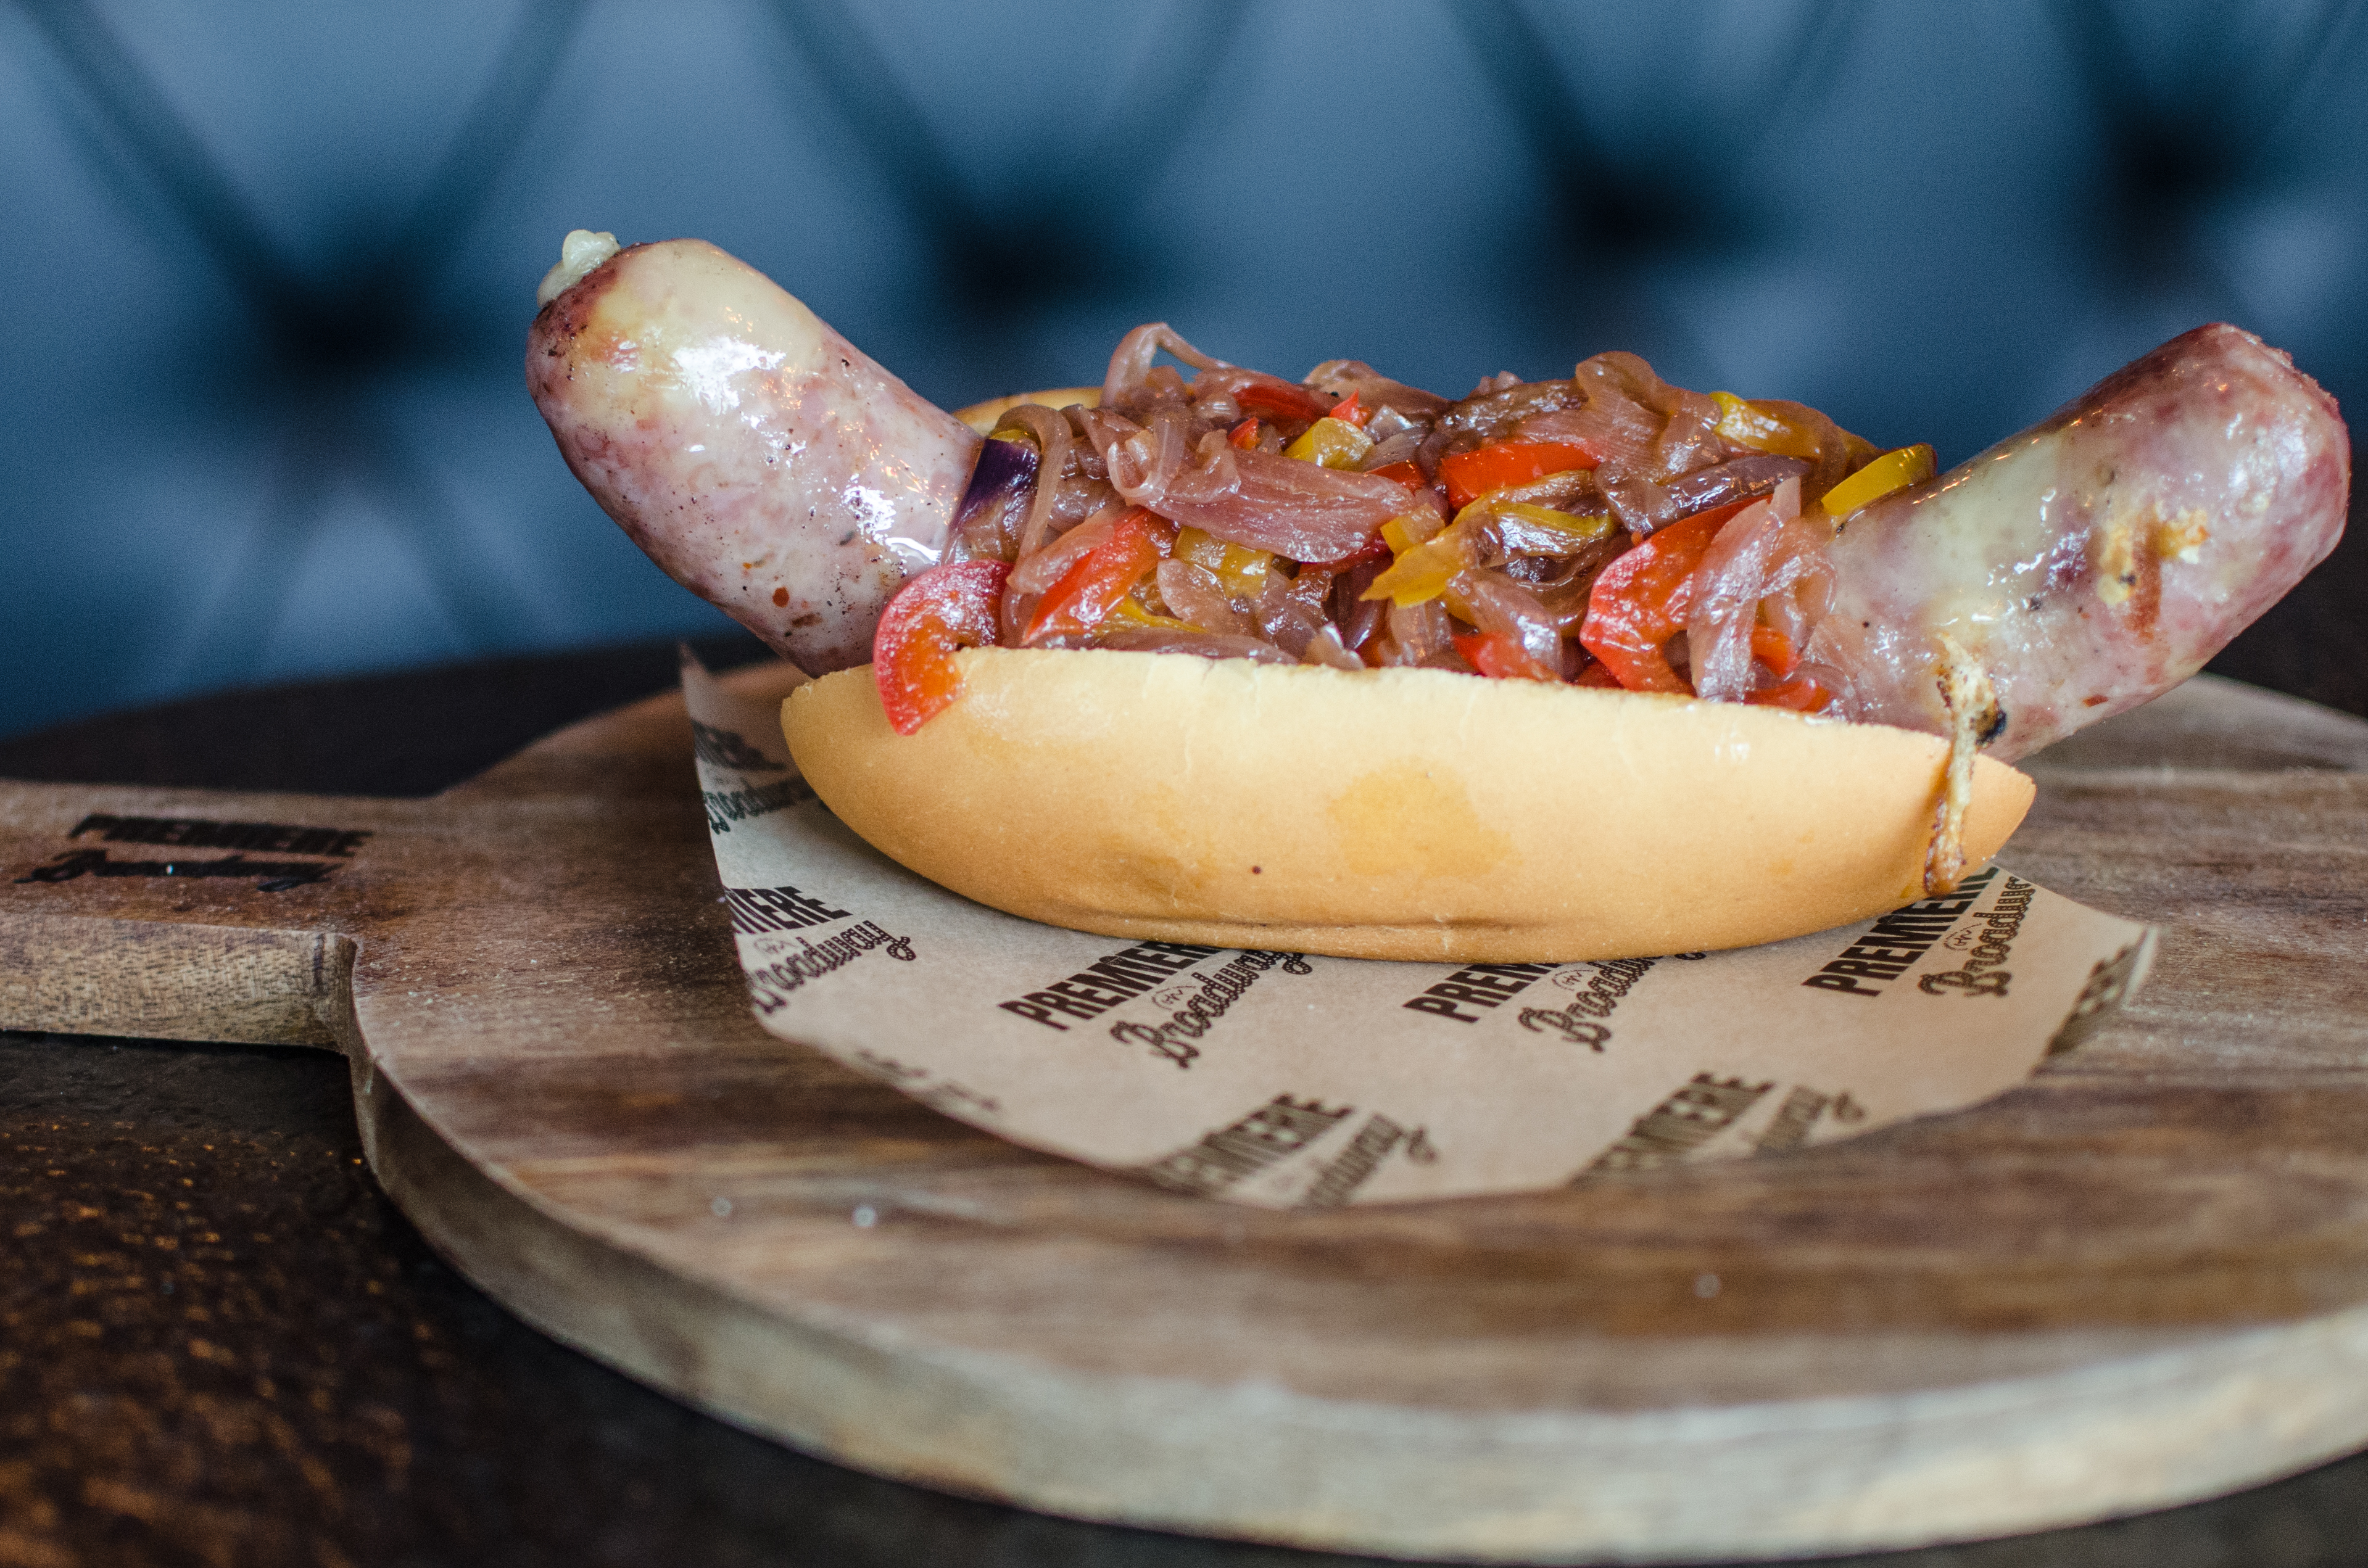 A fat, rounded sausage with melted cheese dripping from the ends sits in a small potato bun and is topped with sauteed peppers and onions. The whole thing sits on a round wooden board with a handle; Premiere on Broadway is branded onto the handle. The board is on a black table with a dark teal booth visible in the background.